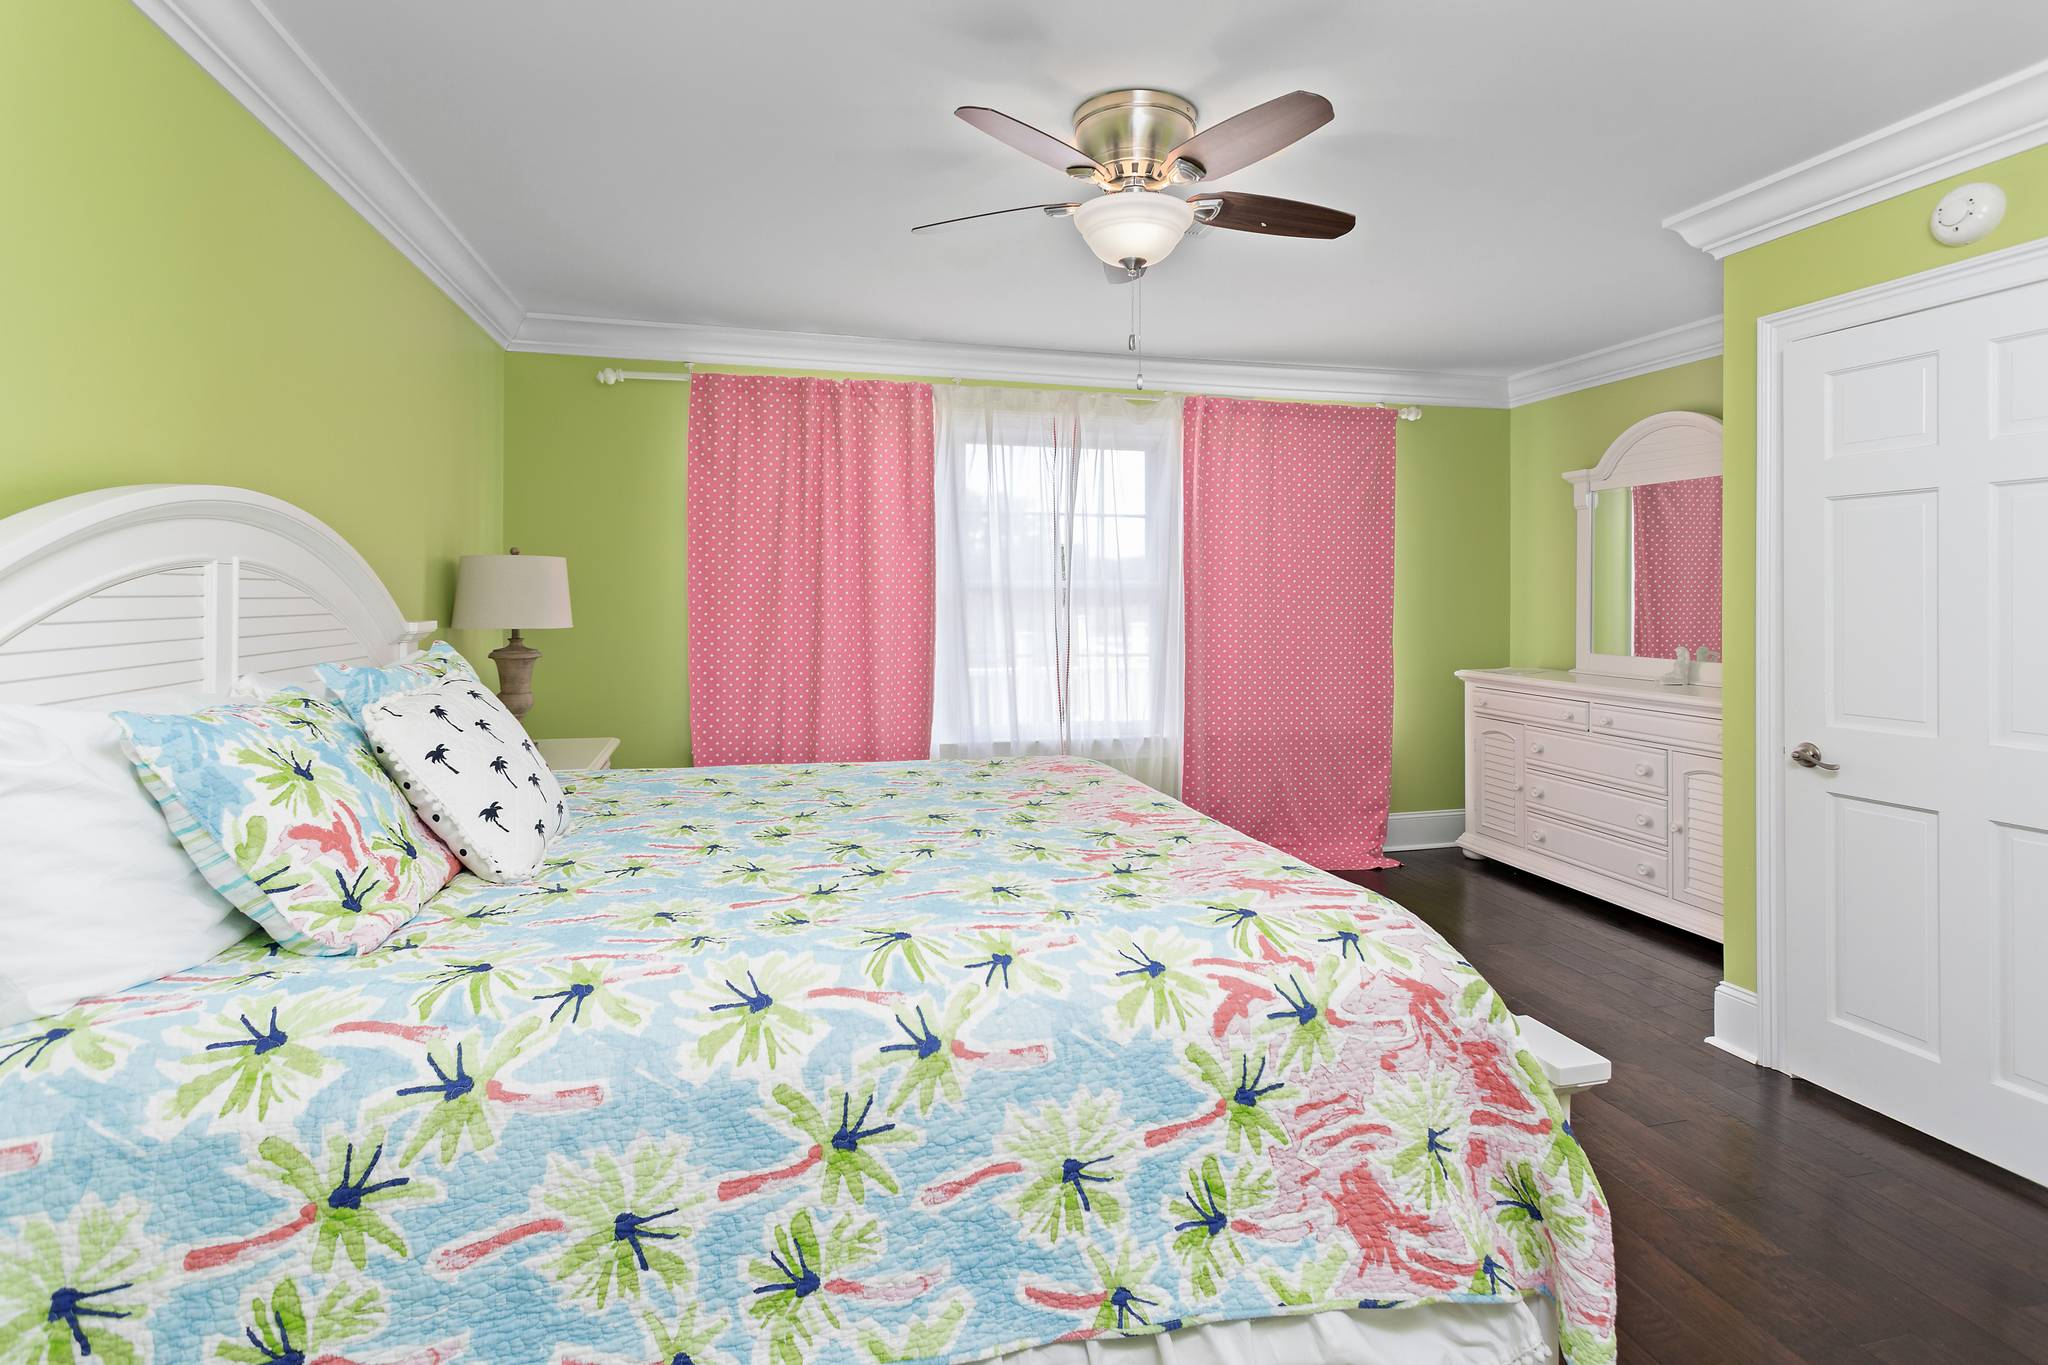 Bedroom at 154 Gould St on St Simons Island